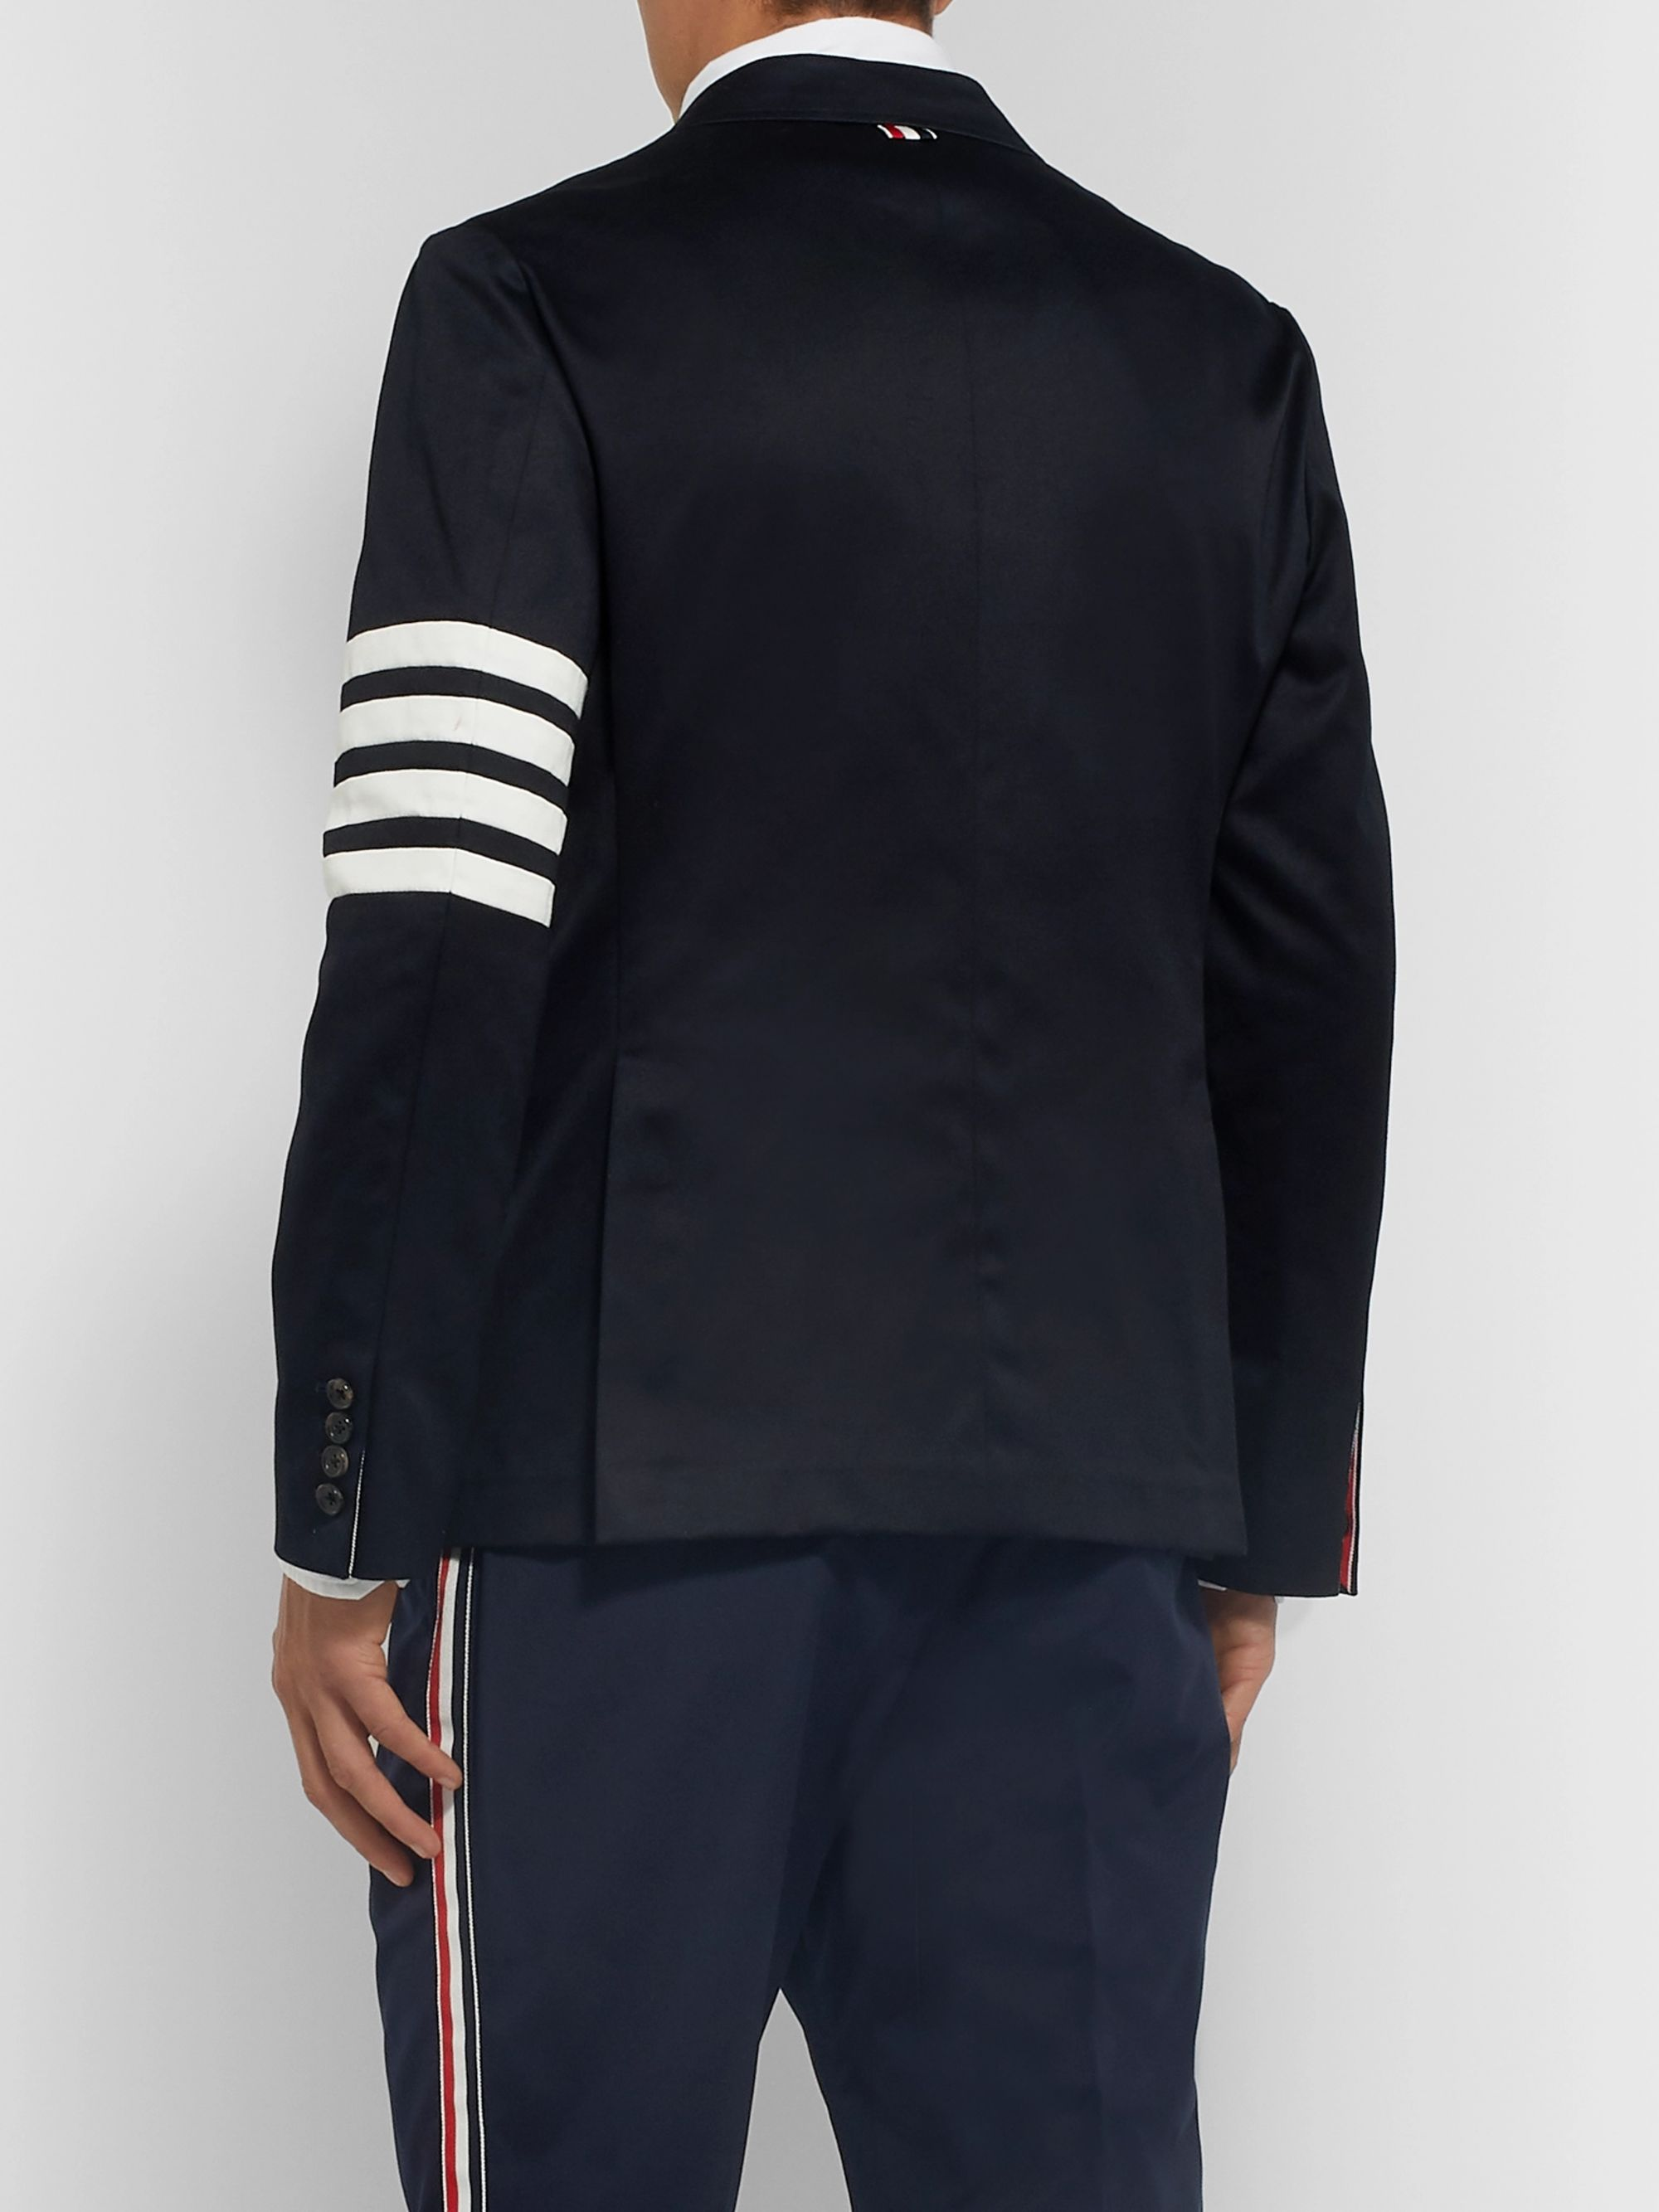 Thom Browne Midnight-Blue Slim-Fit Unstructured Striped Cotton-Twill Blazer